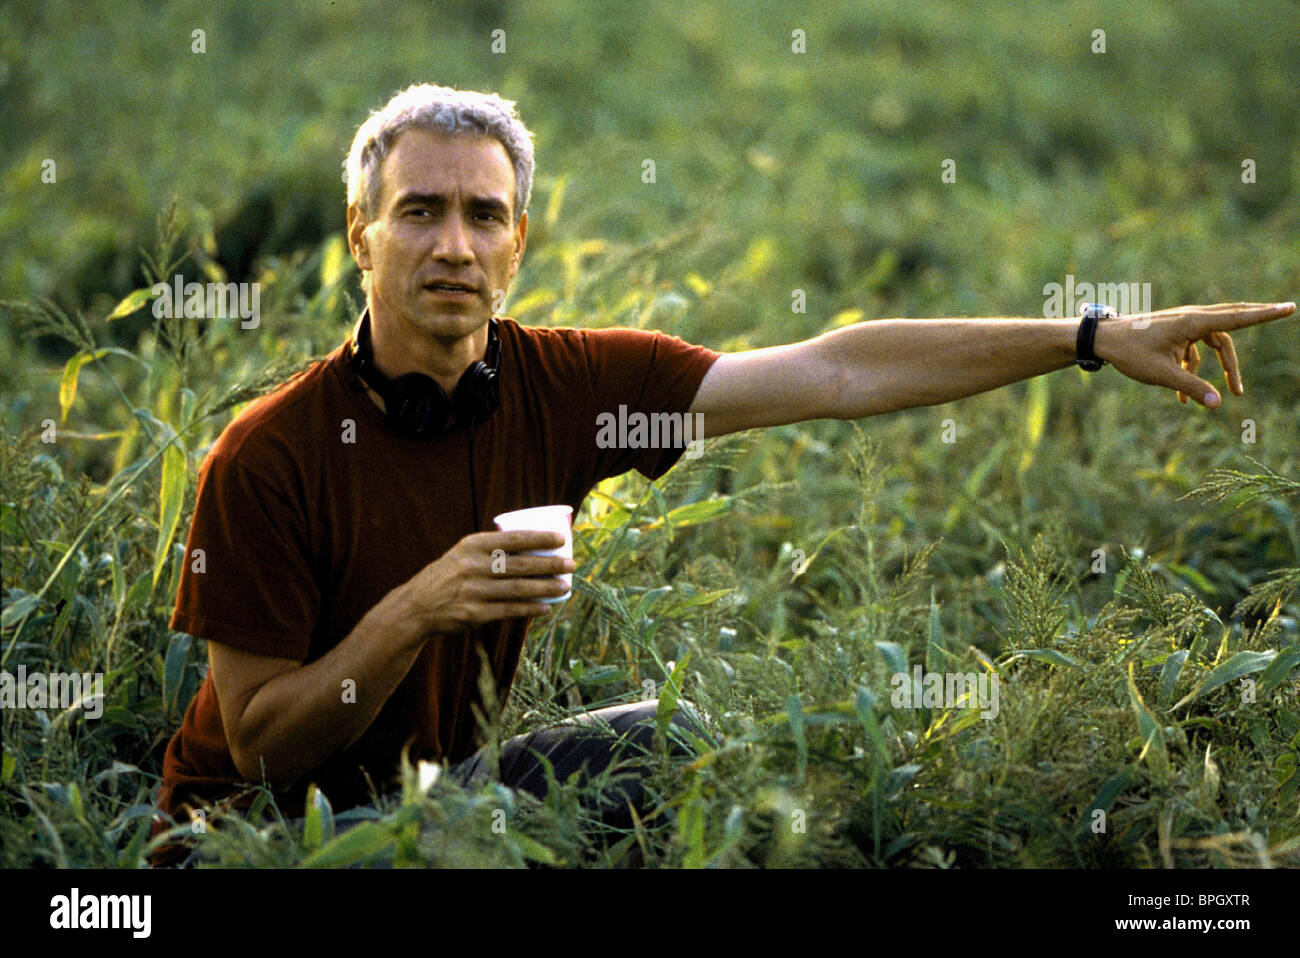 ROLAND EMMERICH THE PATRIOT (2000) - Stock Image